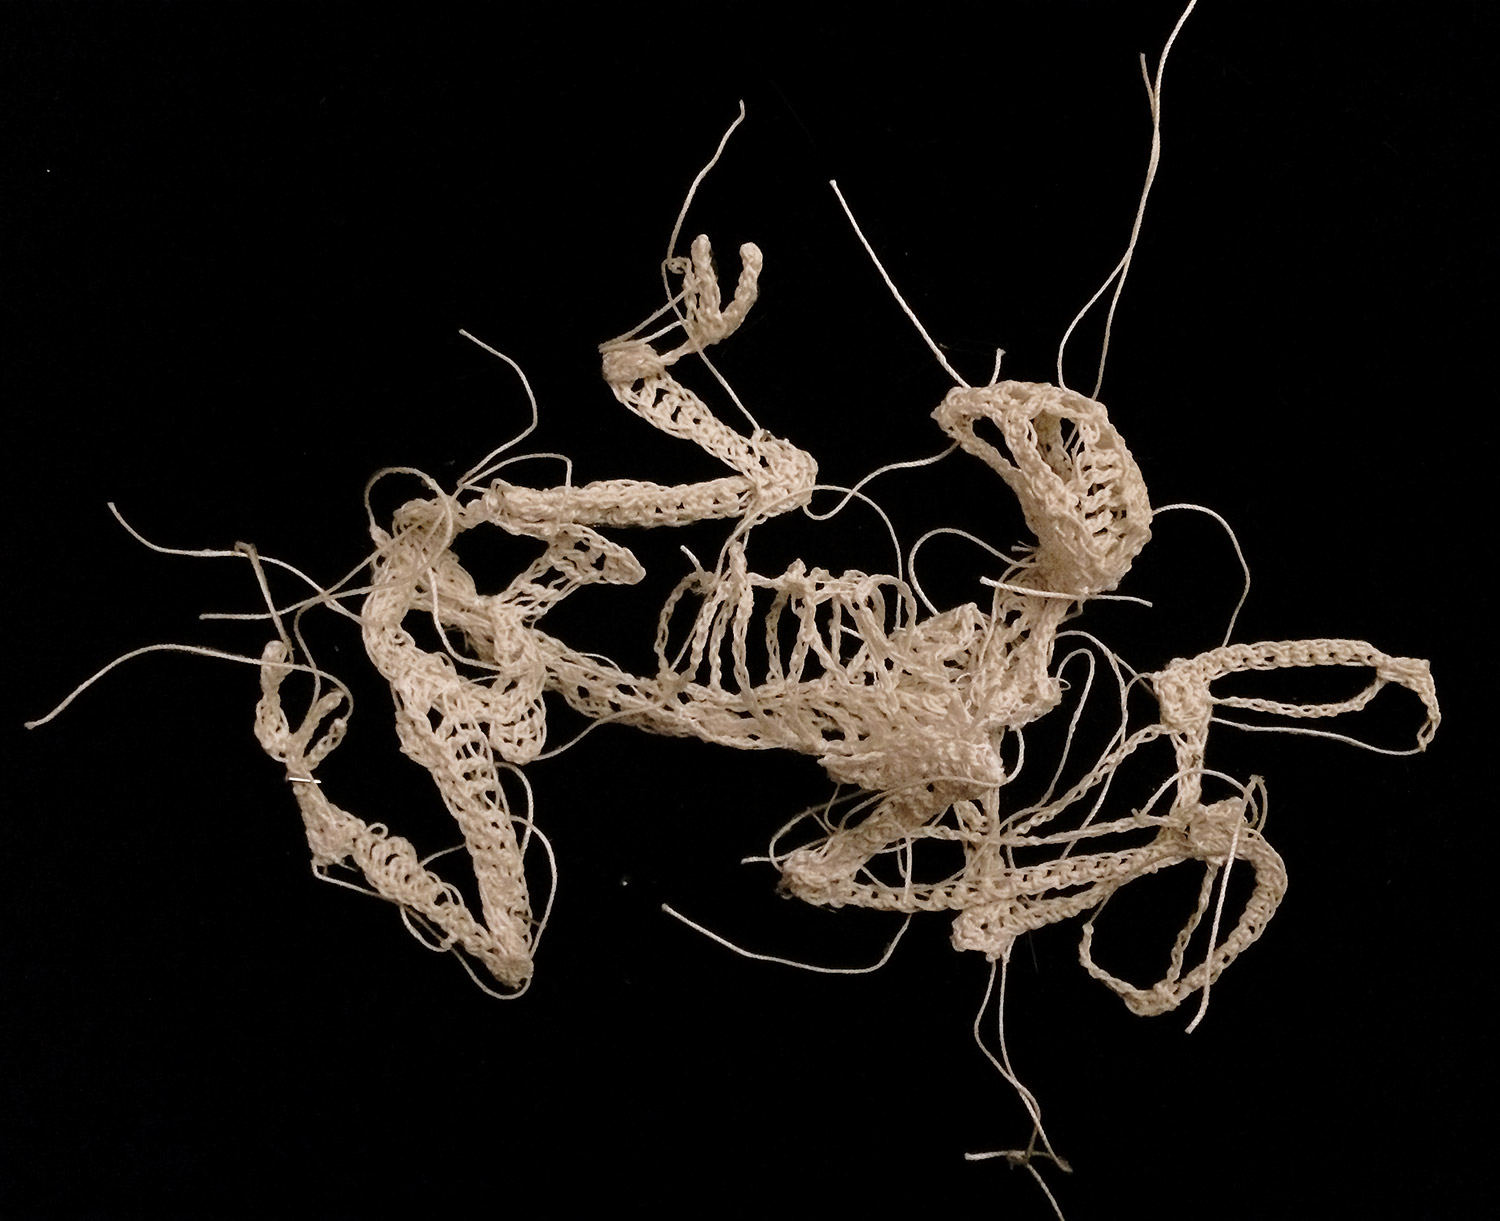 Caitlin McCormack - twisted crocheted animal skeleton